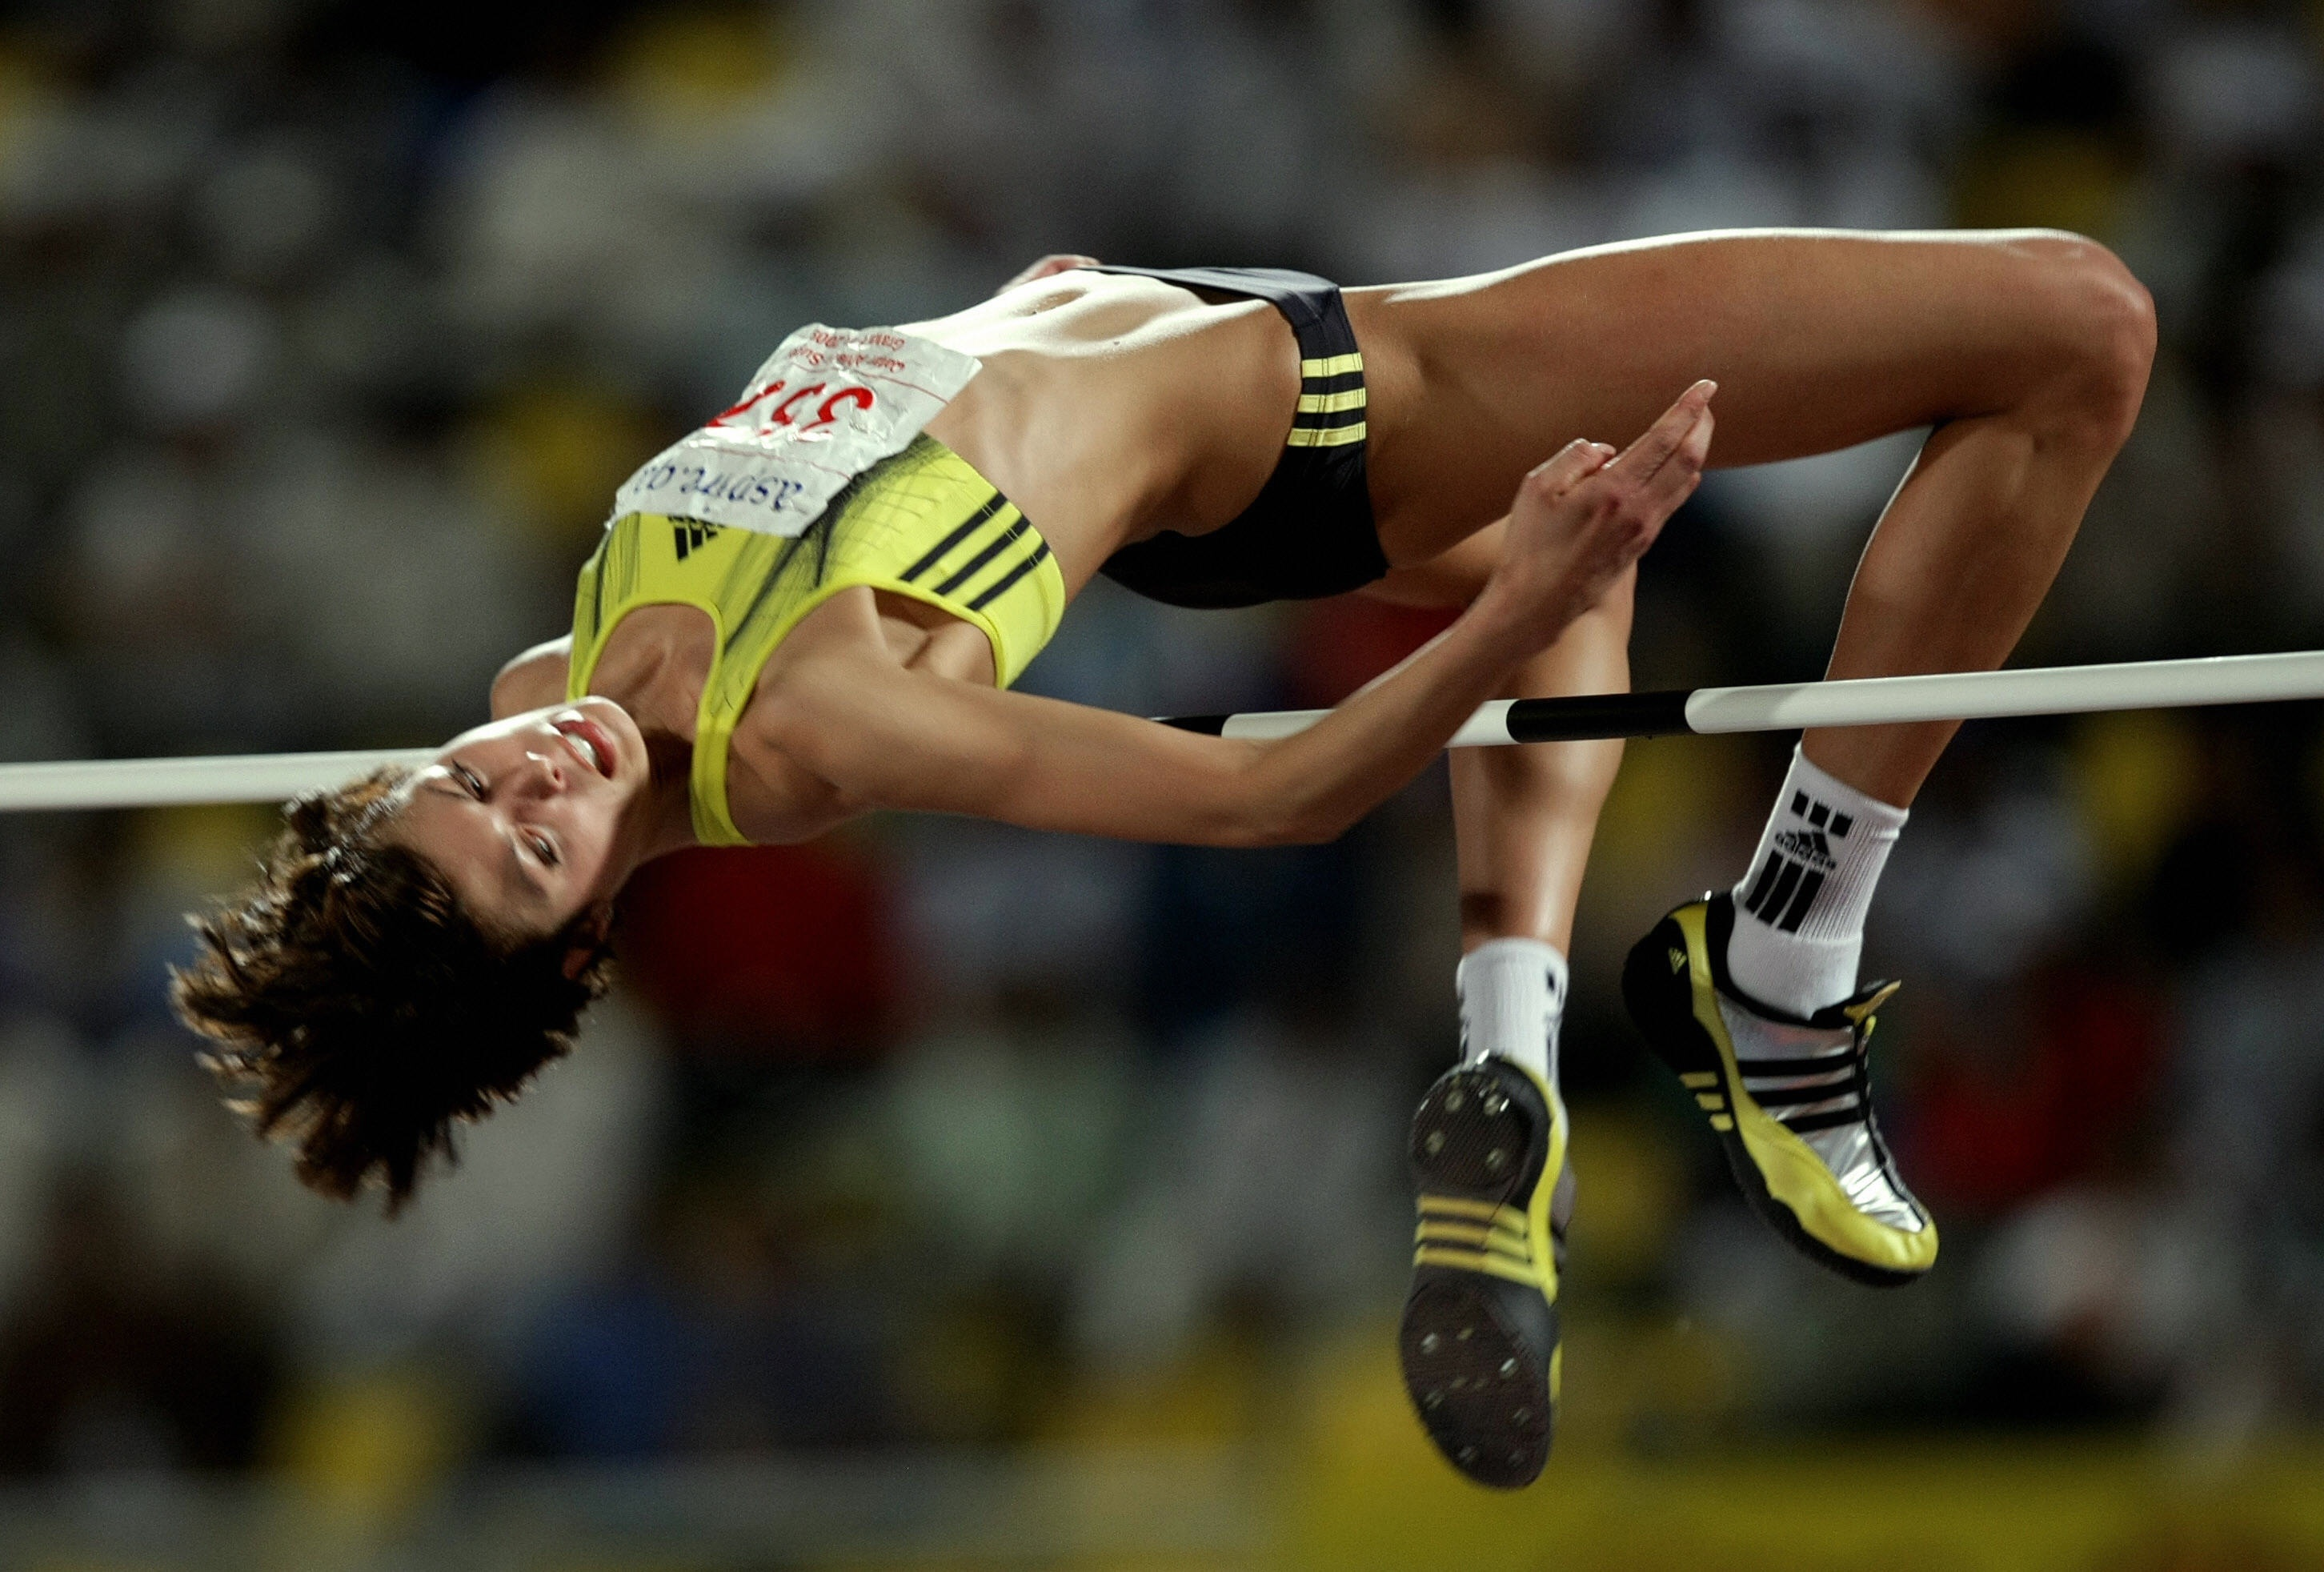 Blanka Vlasic still on hold and not competing